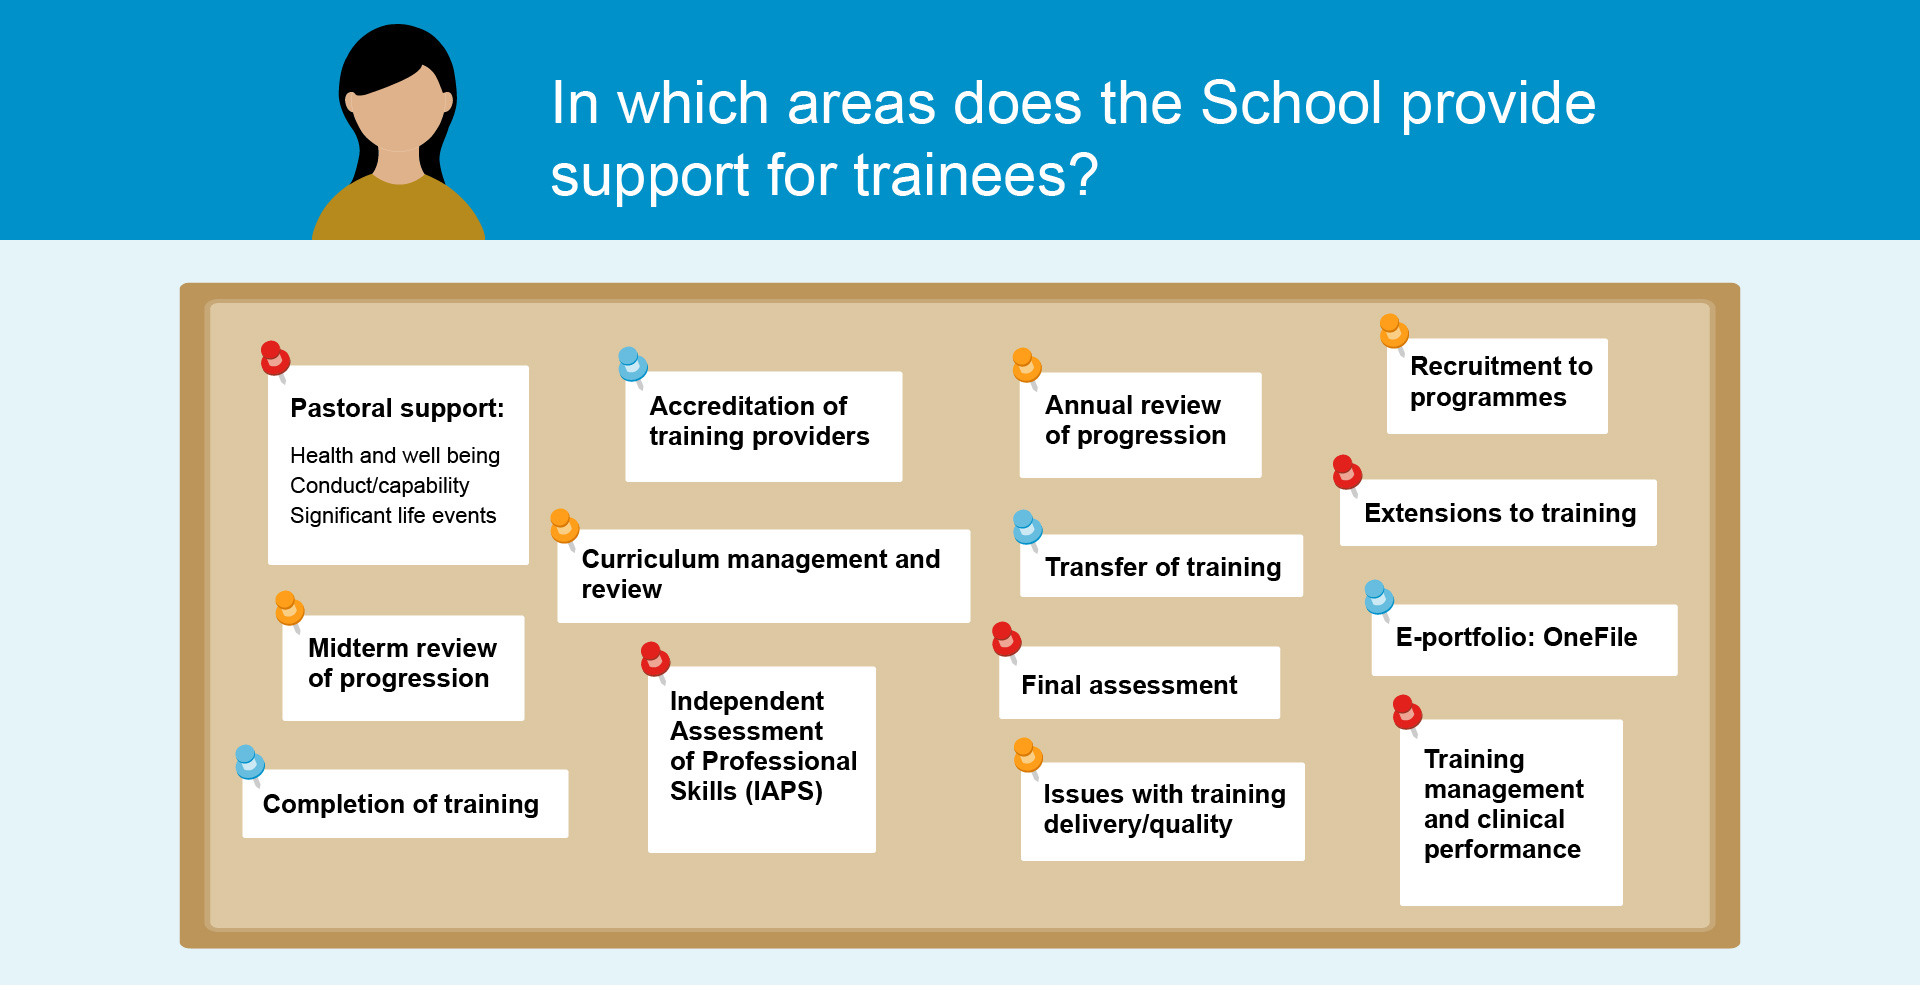 Graphic showing the areas in which the School supports trainees